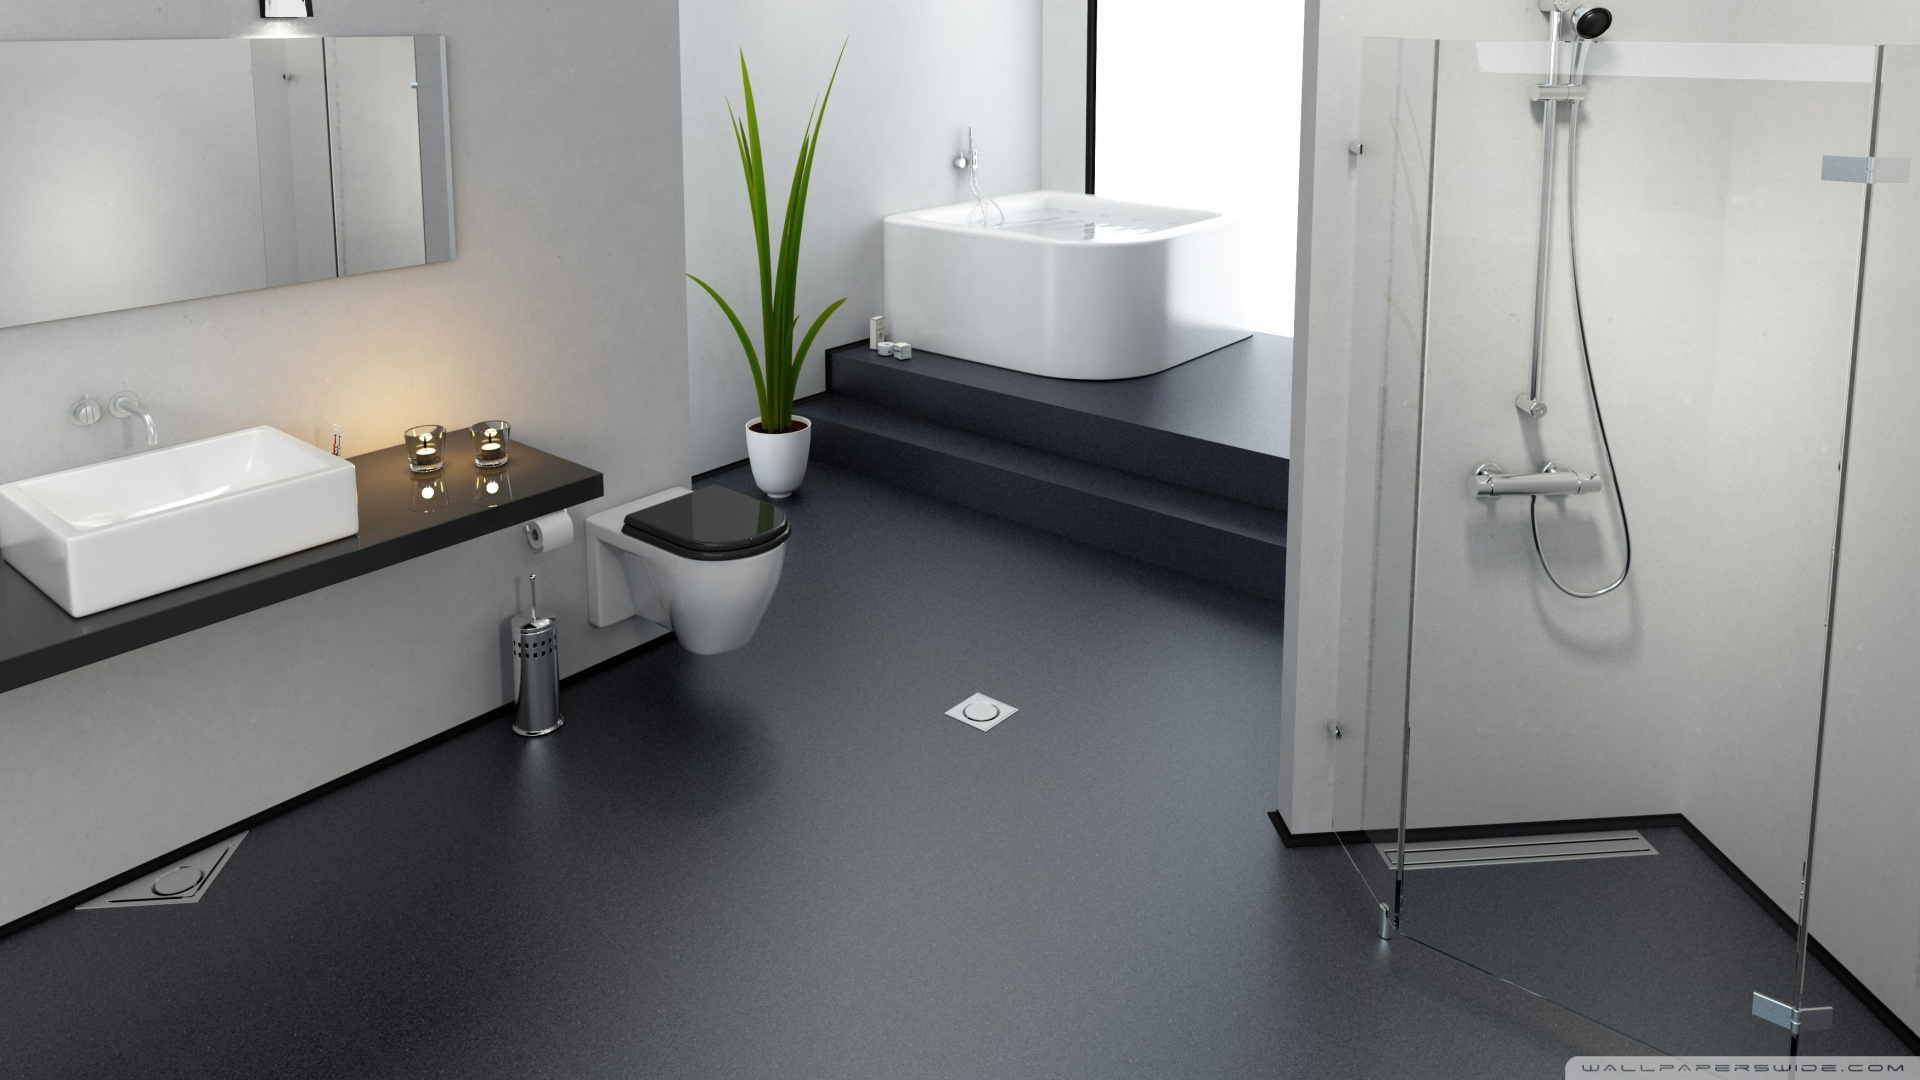 Bathroom Wallpaper on Black Floor. Bathroom Wallpaper Ideas Collection Free Download